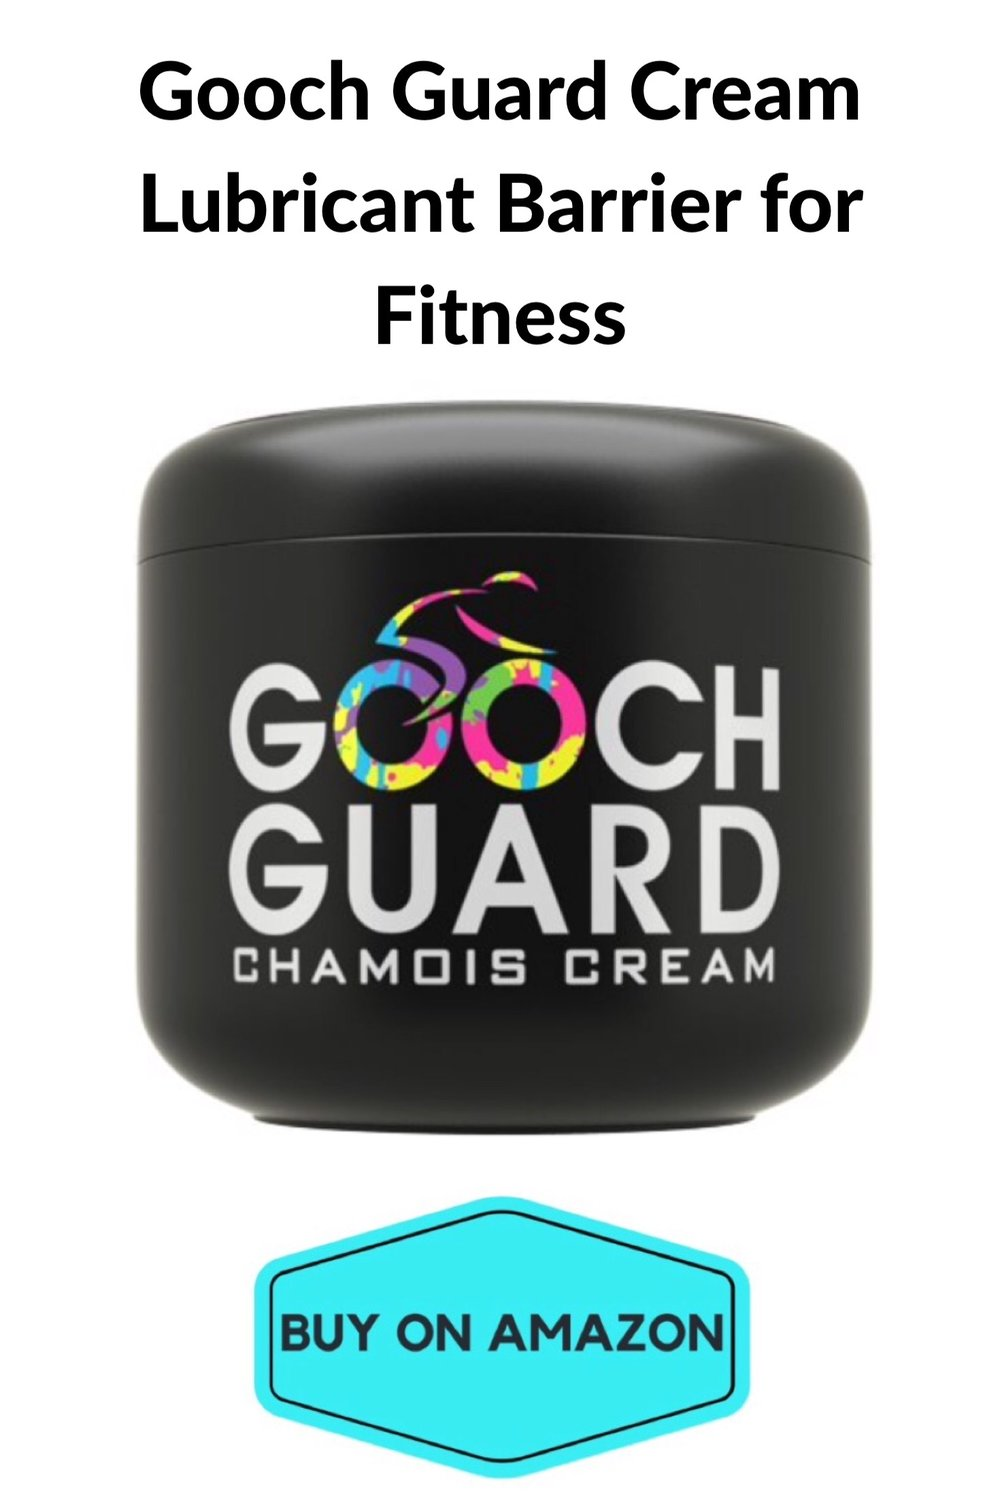 Gooch Guard Cream Lubricant Barrier